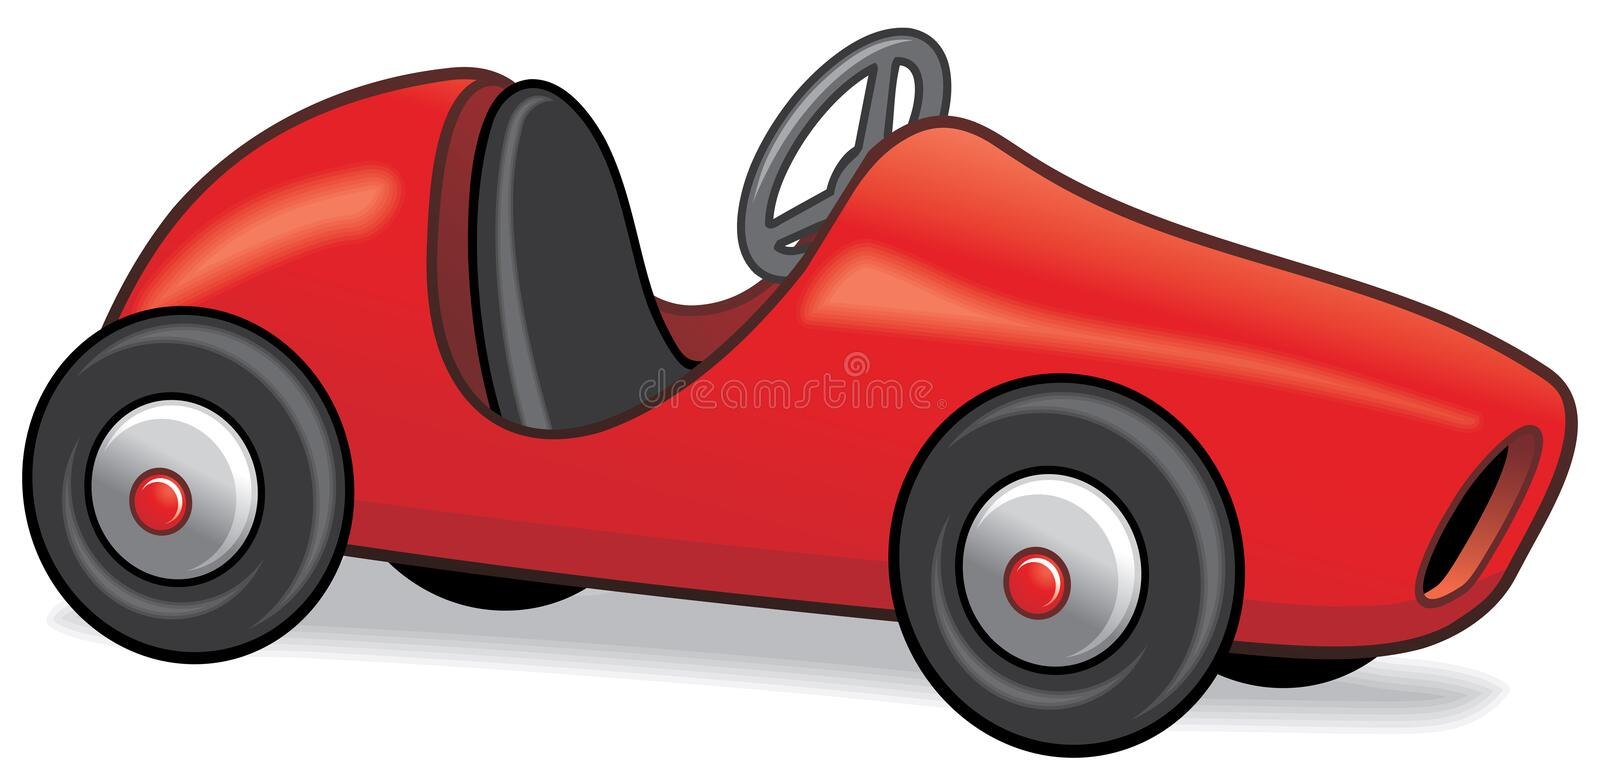 Download Red pedal car stock vector. Illustration of racing, retro - 6991286